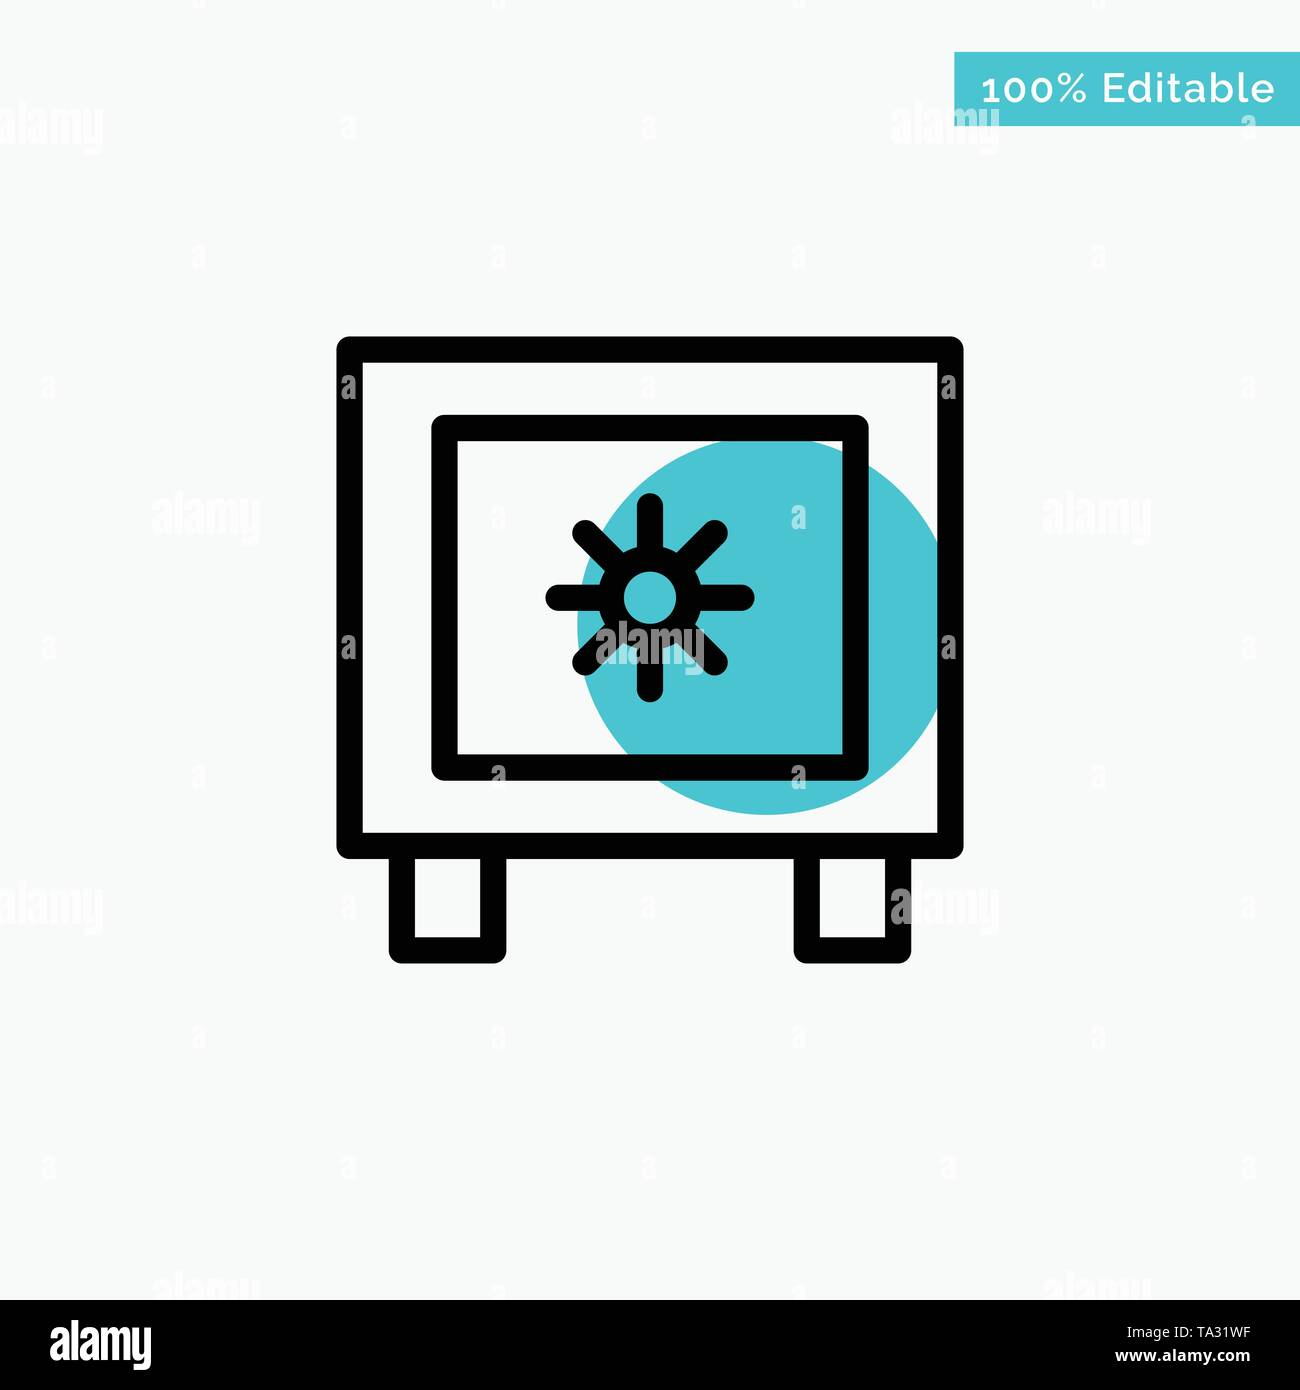 Locker, Lock, Global, Logistic turquoise highlight circle point Vector icon - Stock Image